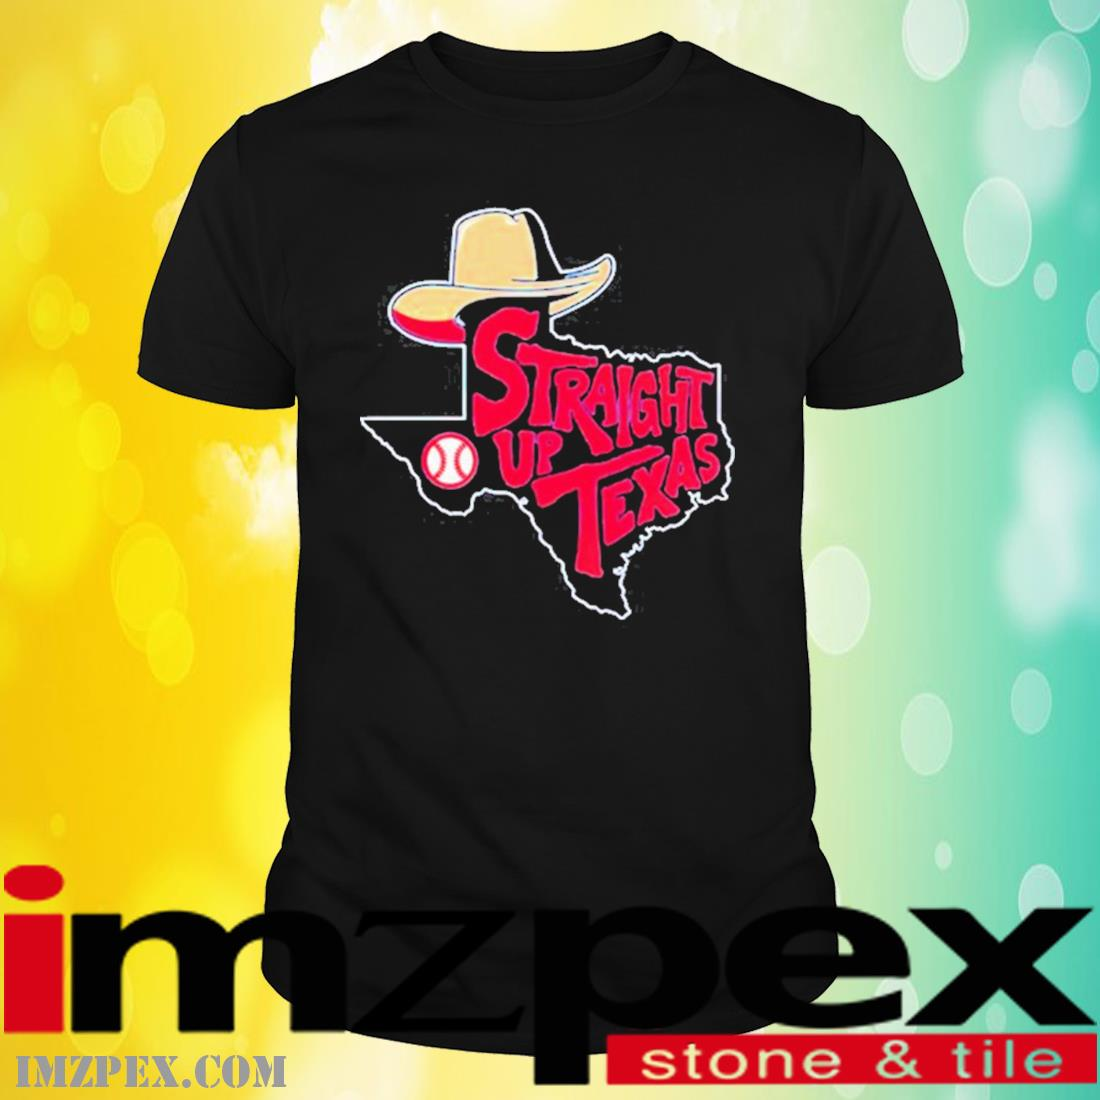 Straight Up Texas Baseball Shirt